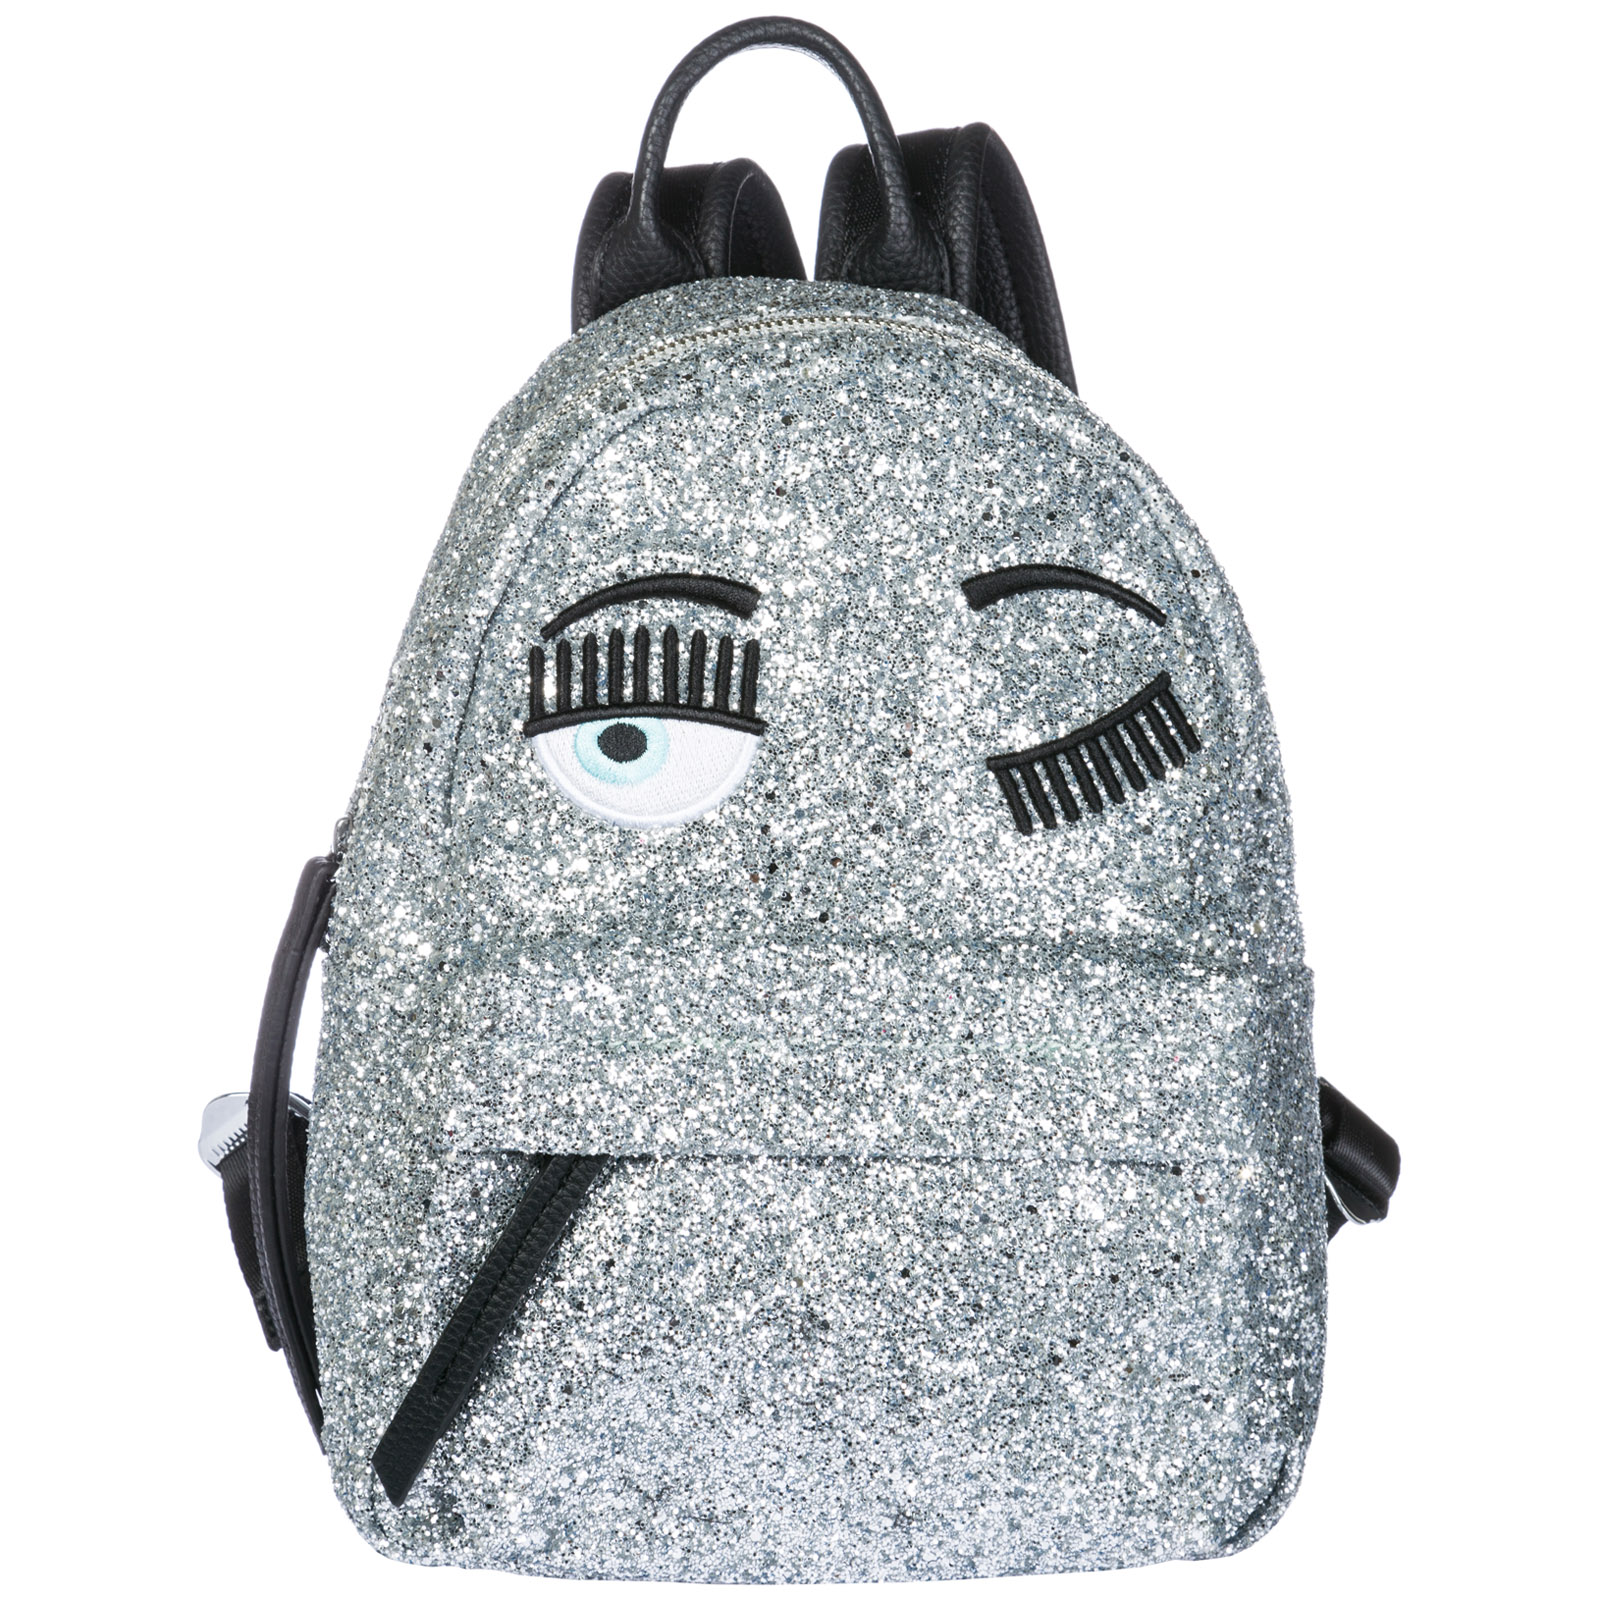 Women's rucksack backpack travel  flirting